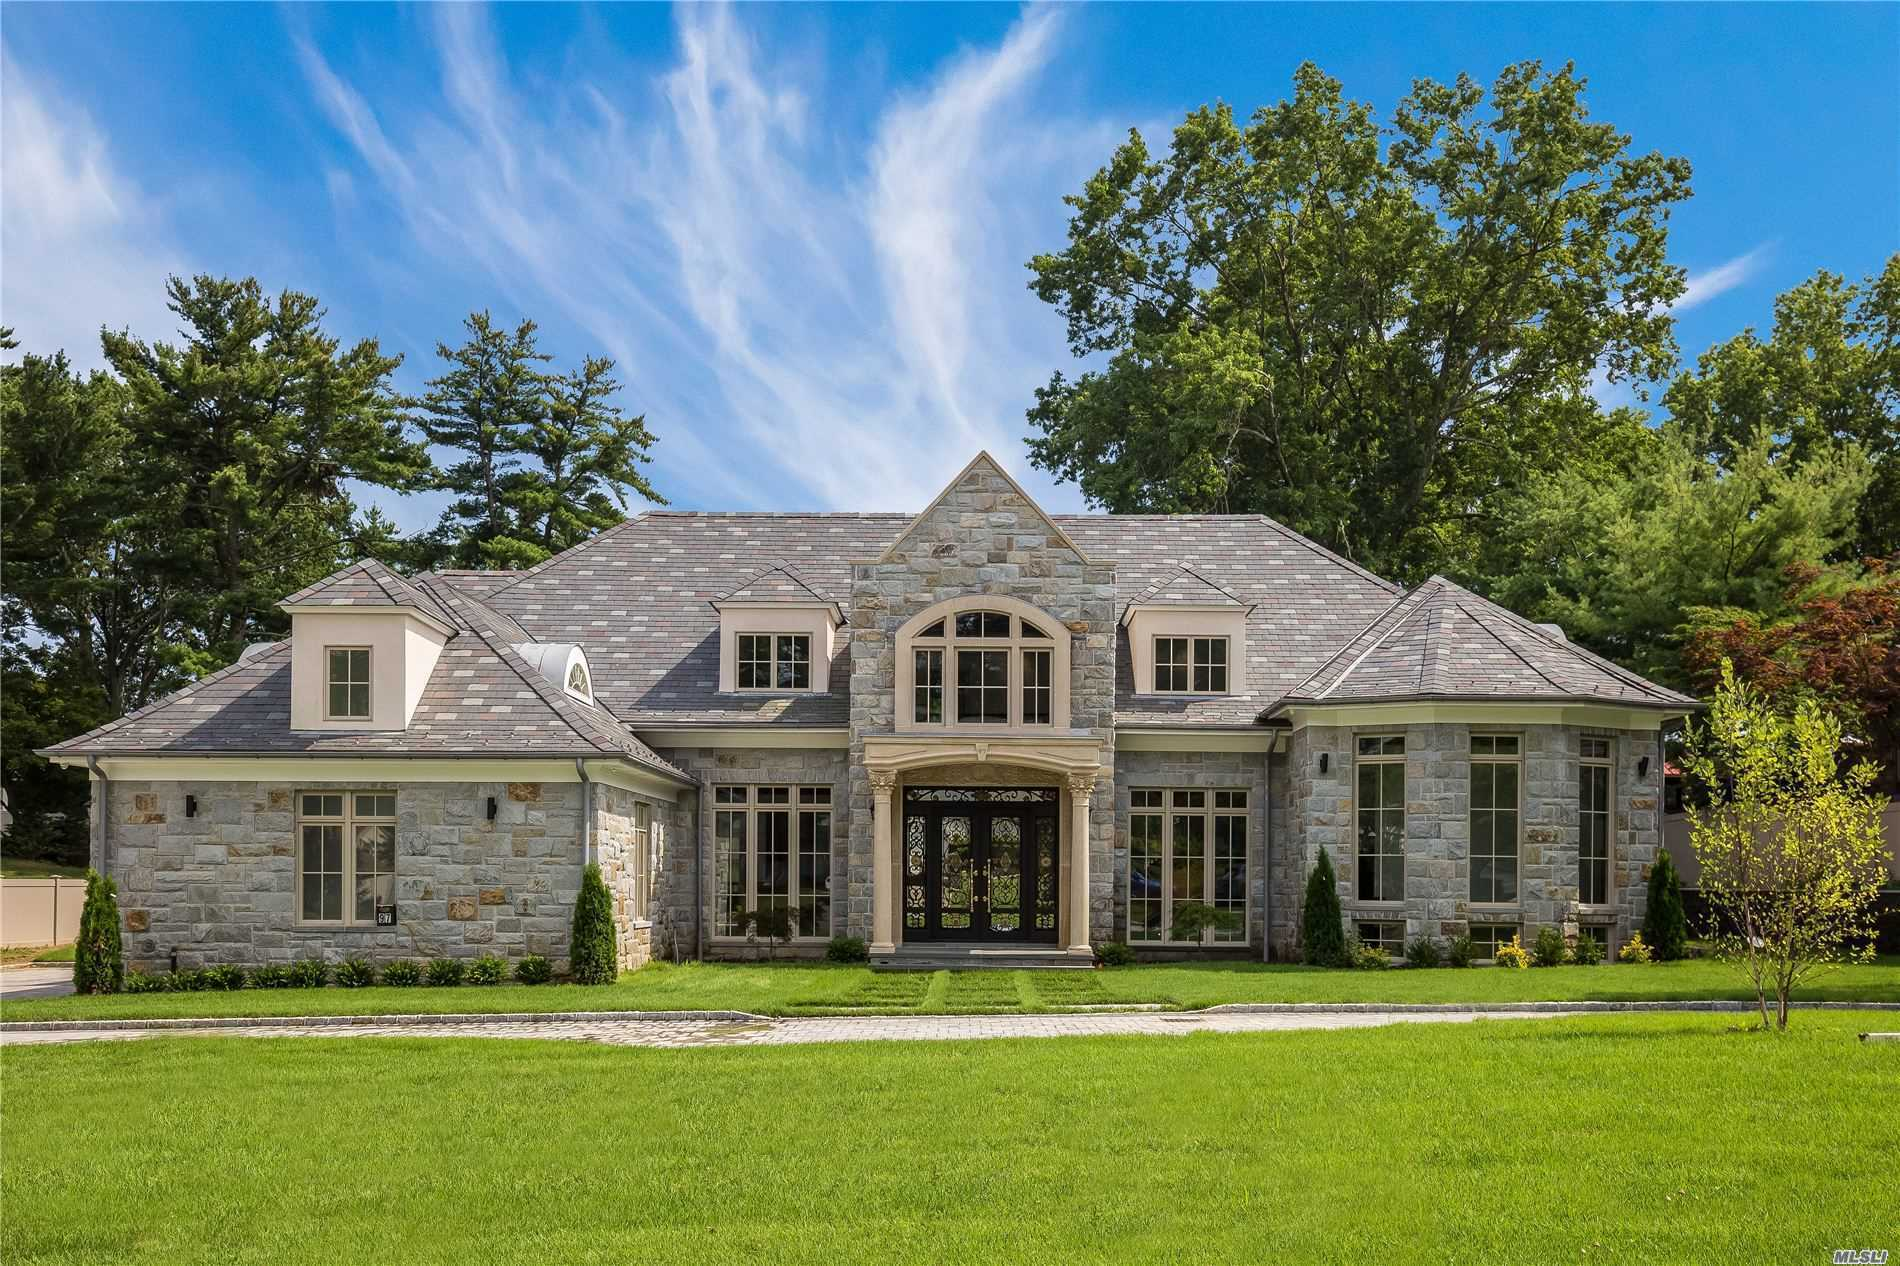 97 Crescent Dr - Searingtown, New York